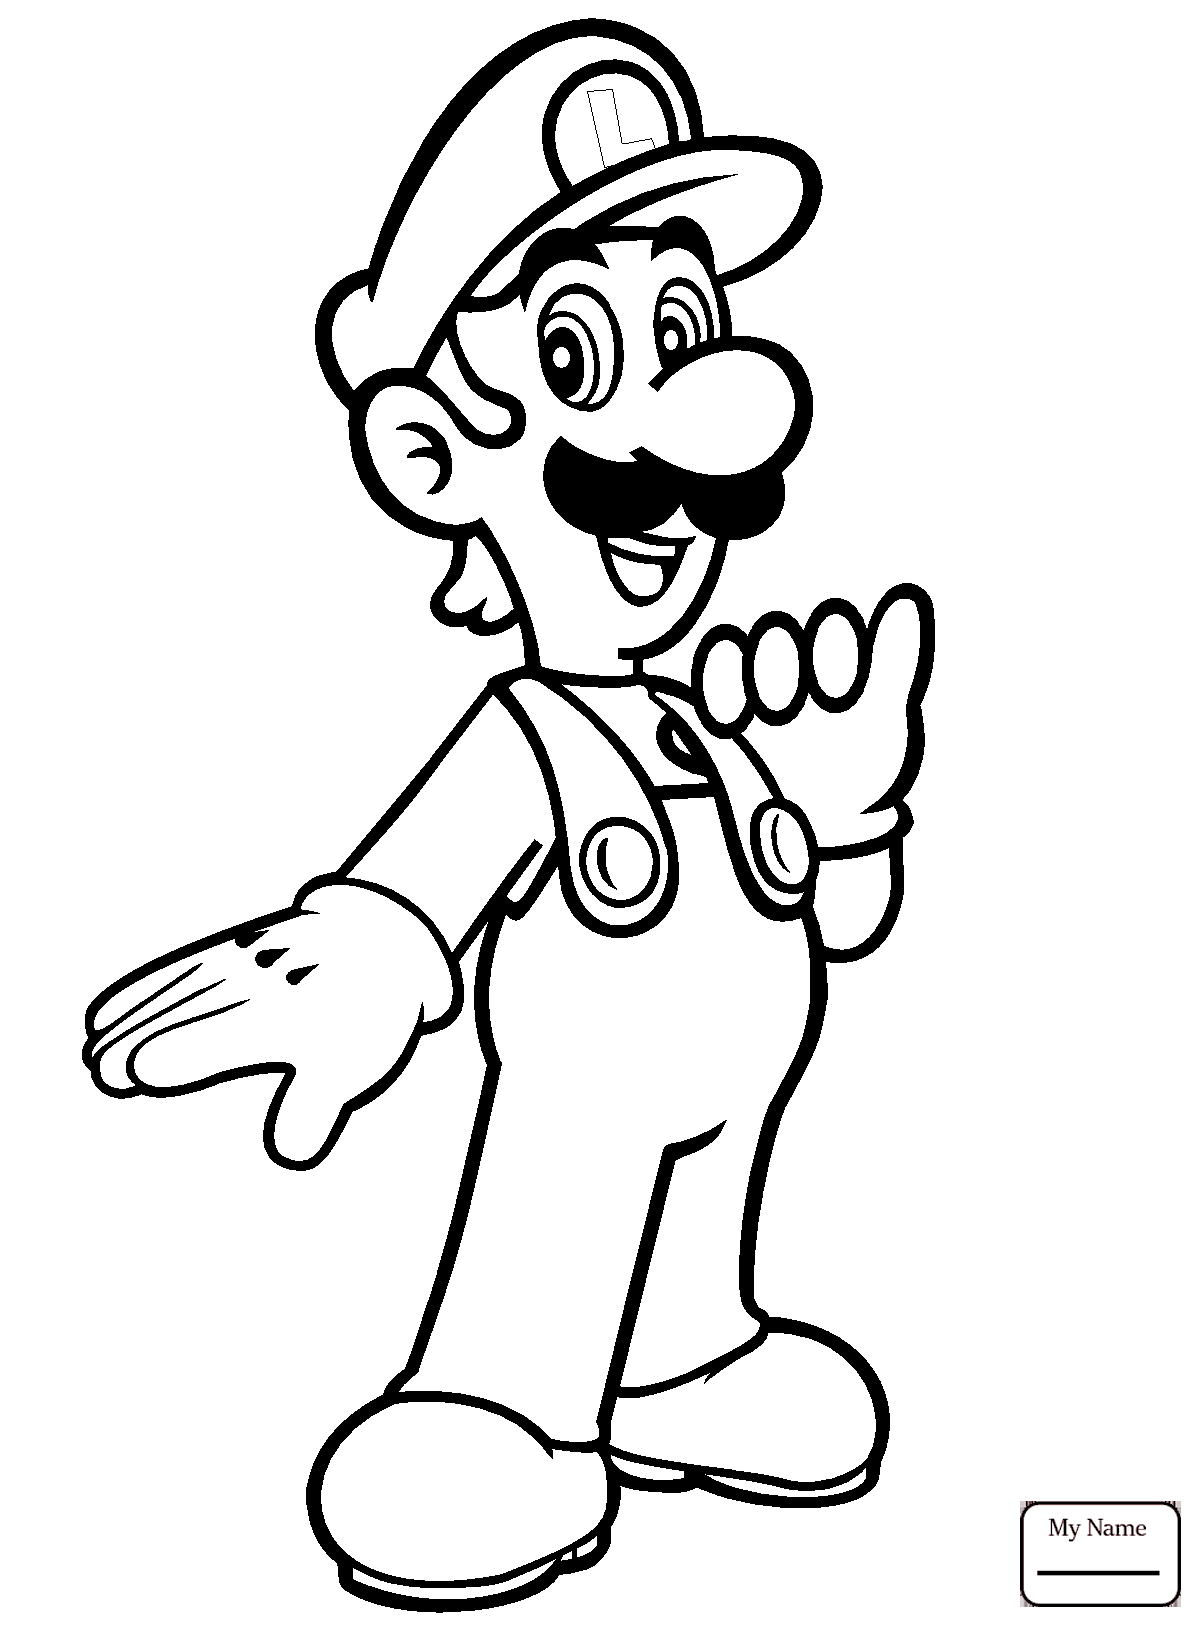 Baby Luigi Drawing at GetDrawings.com | Free for personal use Baby ...